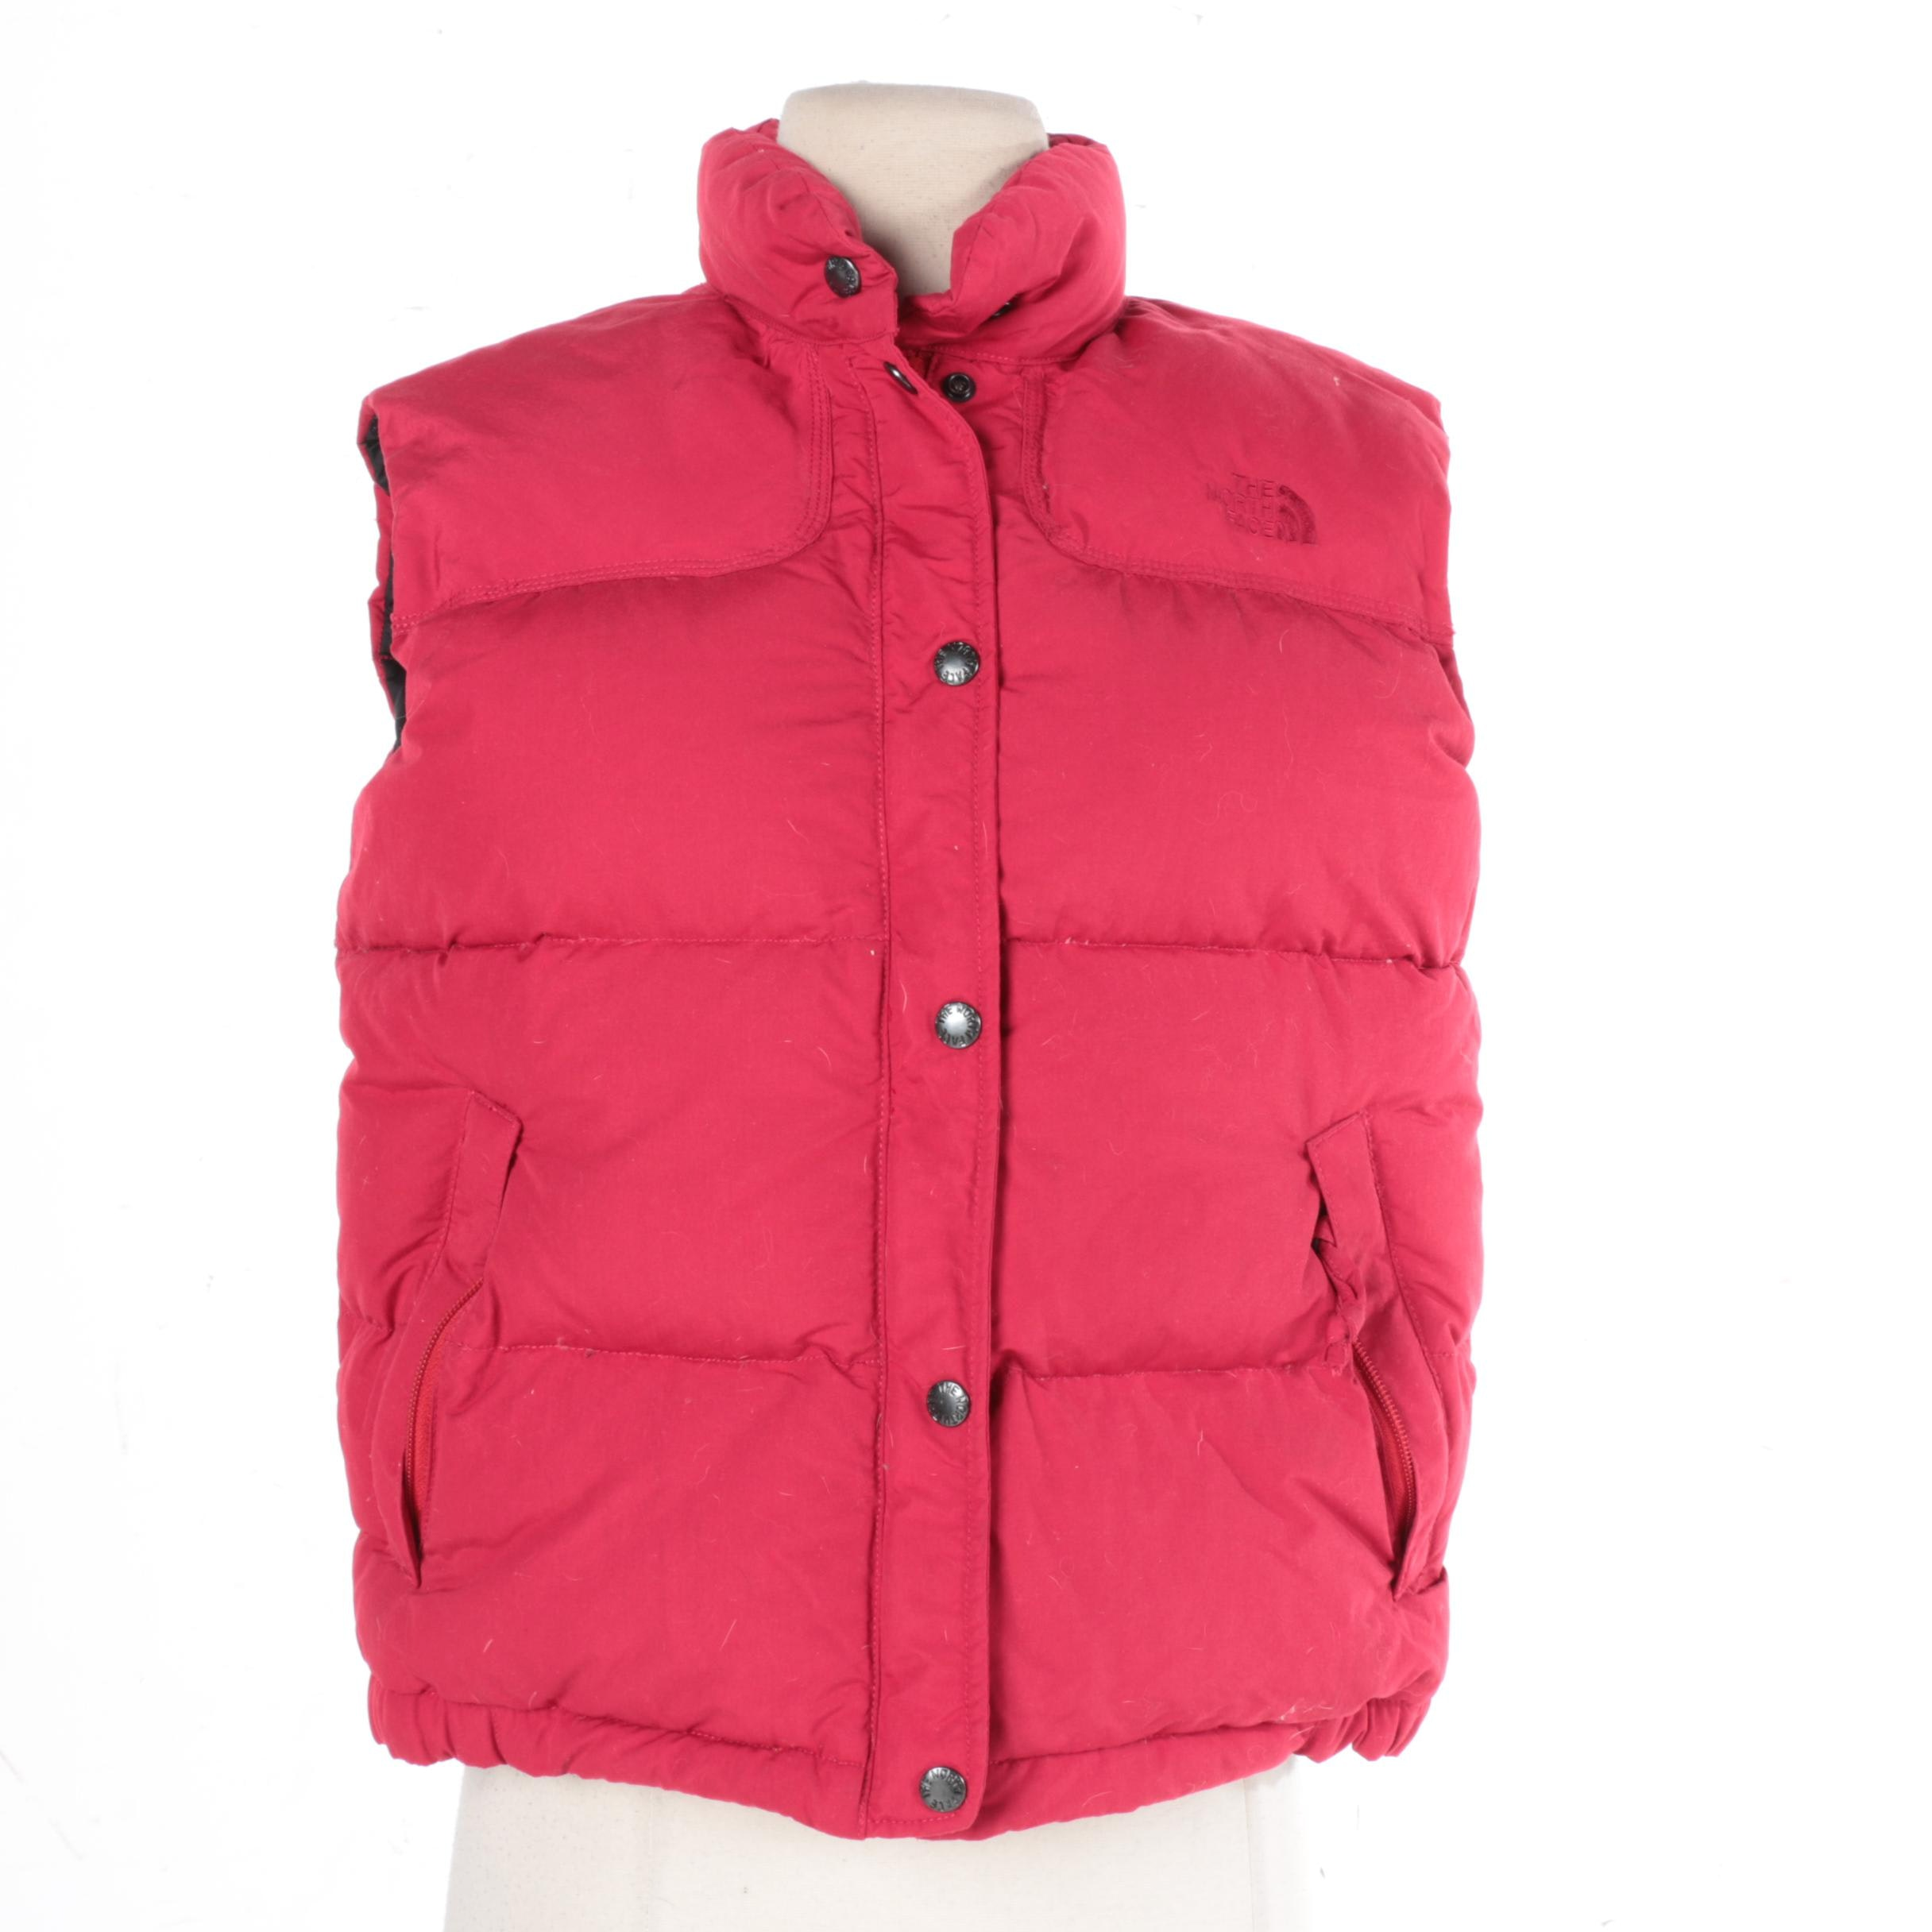 Women's The North Face Red Puffer Vest